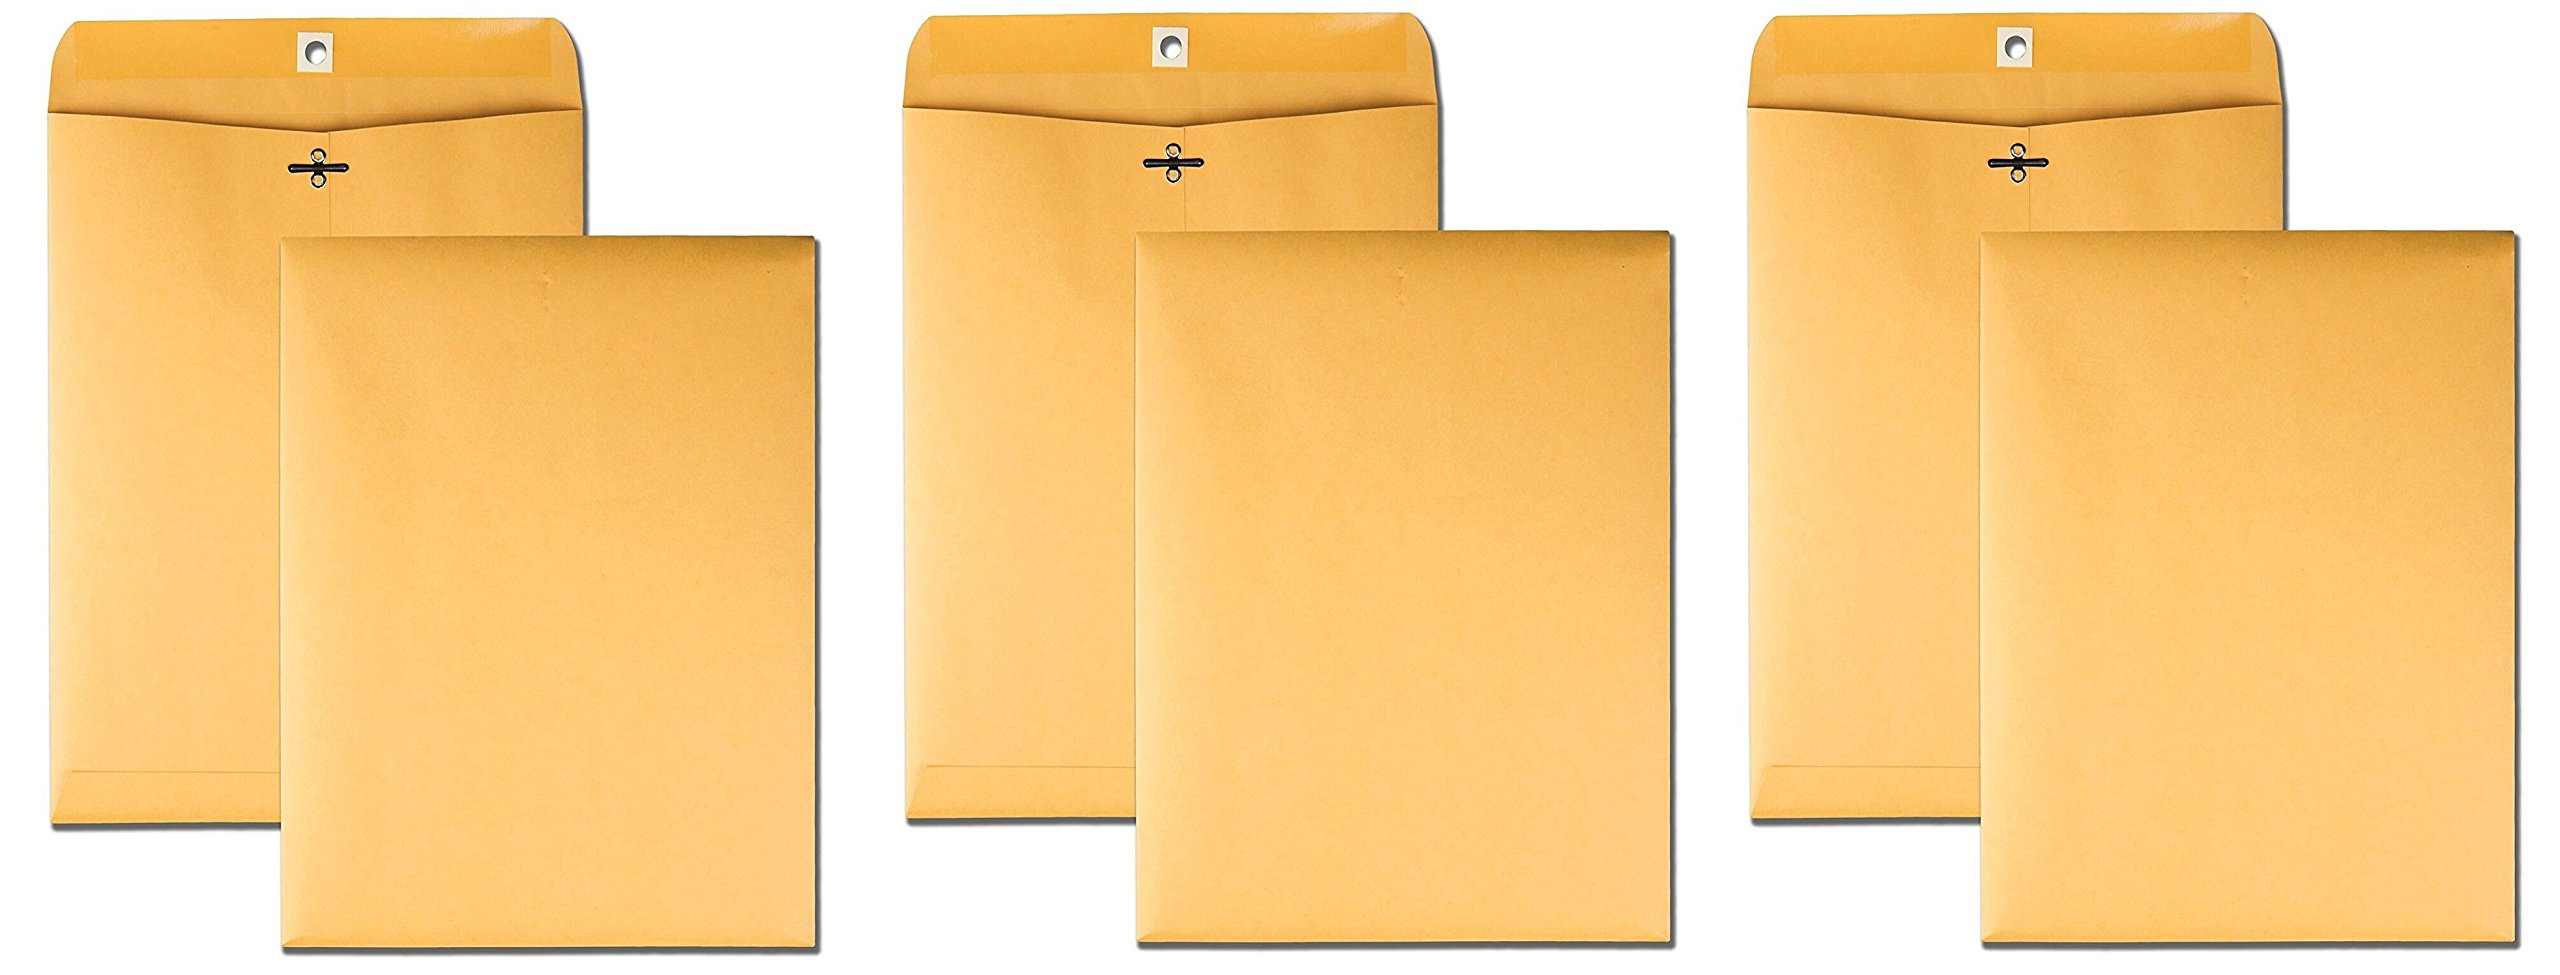 Quality Park 9 x 12 Clasp Envelopes with Deeply Gummed Flaps, Great for Filing, Storing or Mailing Documents, 28 lb Brown Kraft, 100 per Box (37890) (1000 Envelopes)